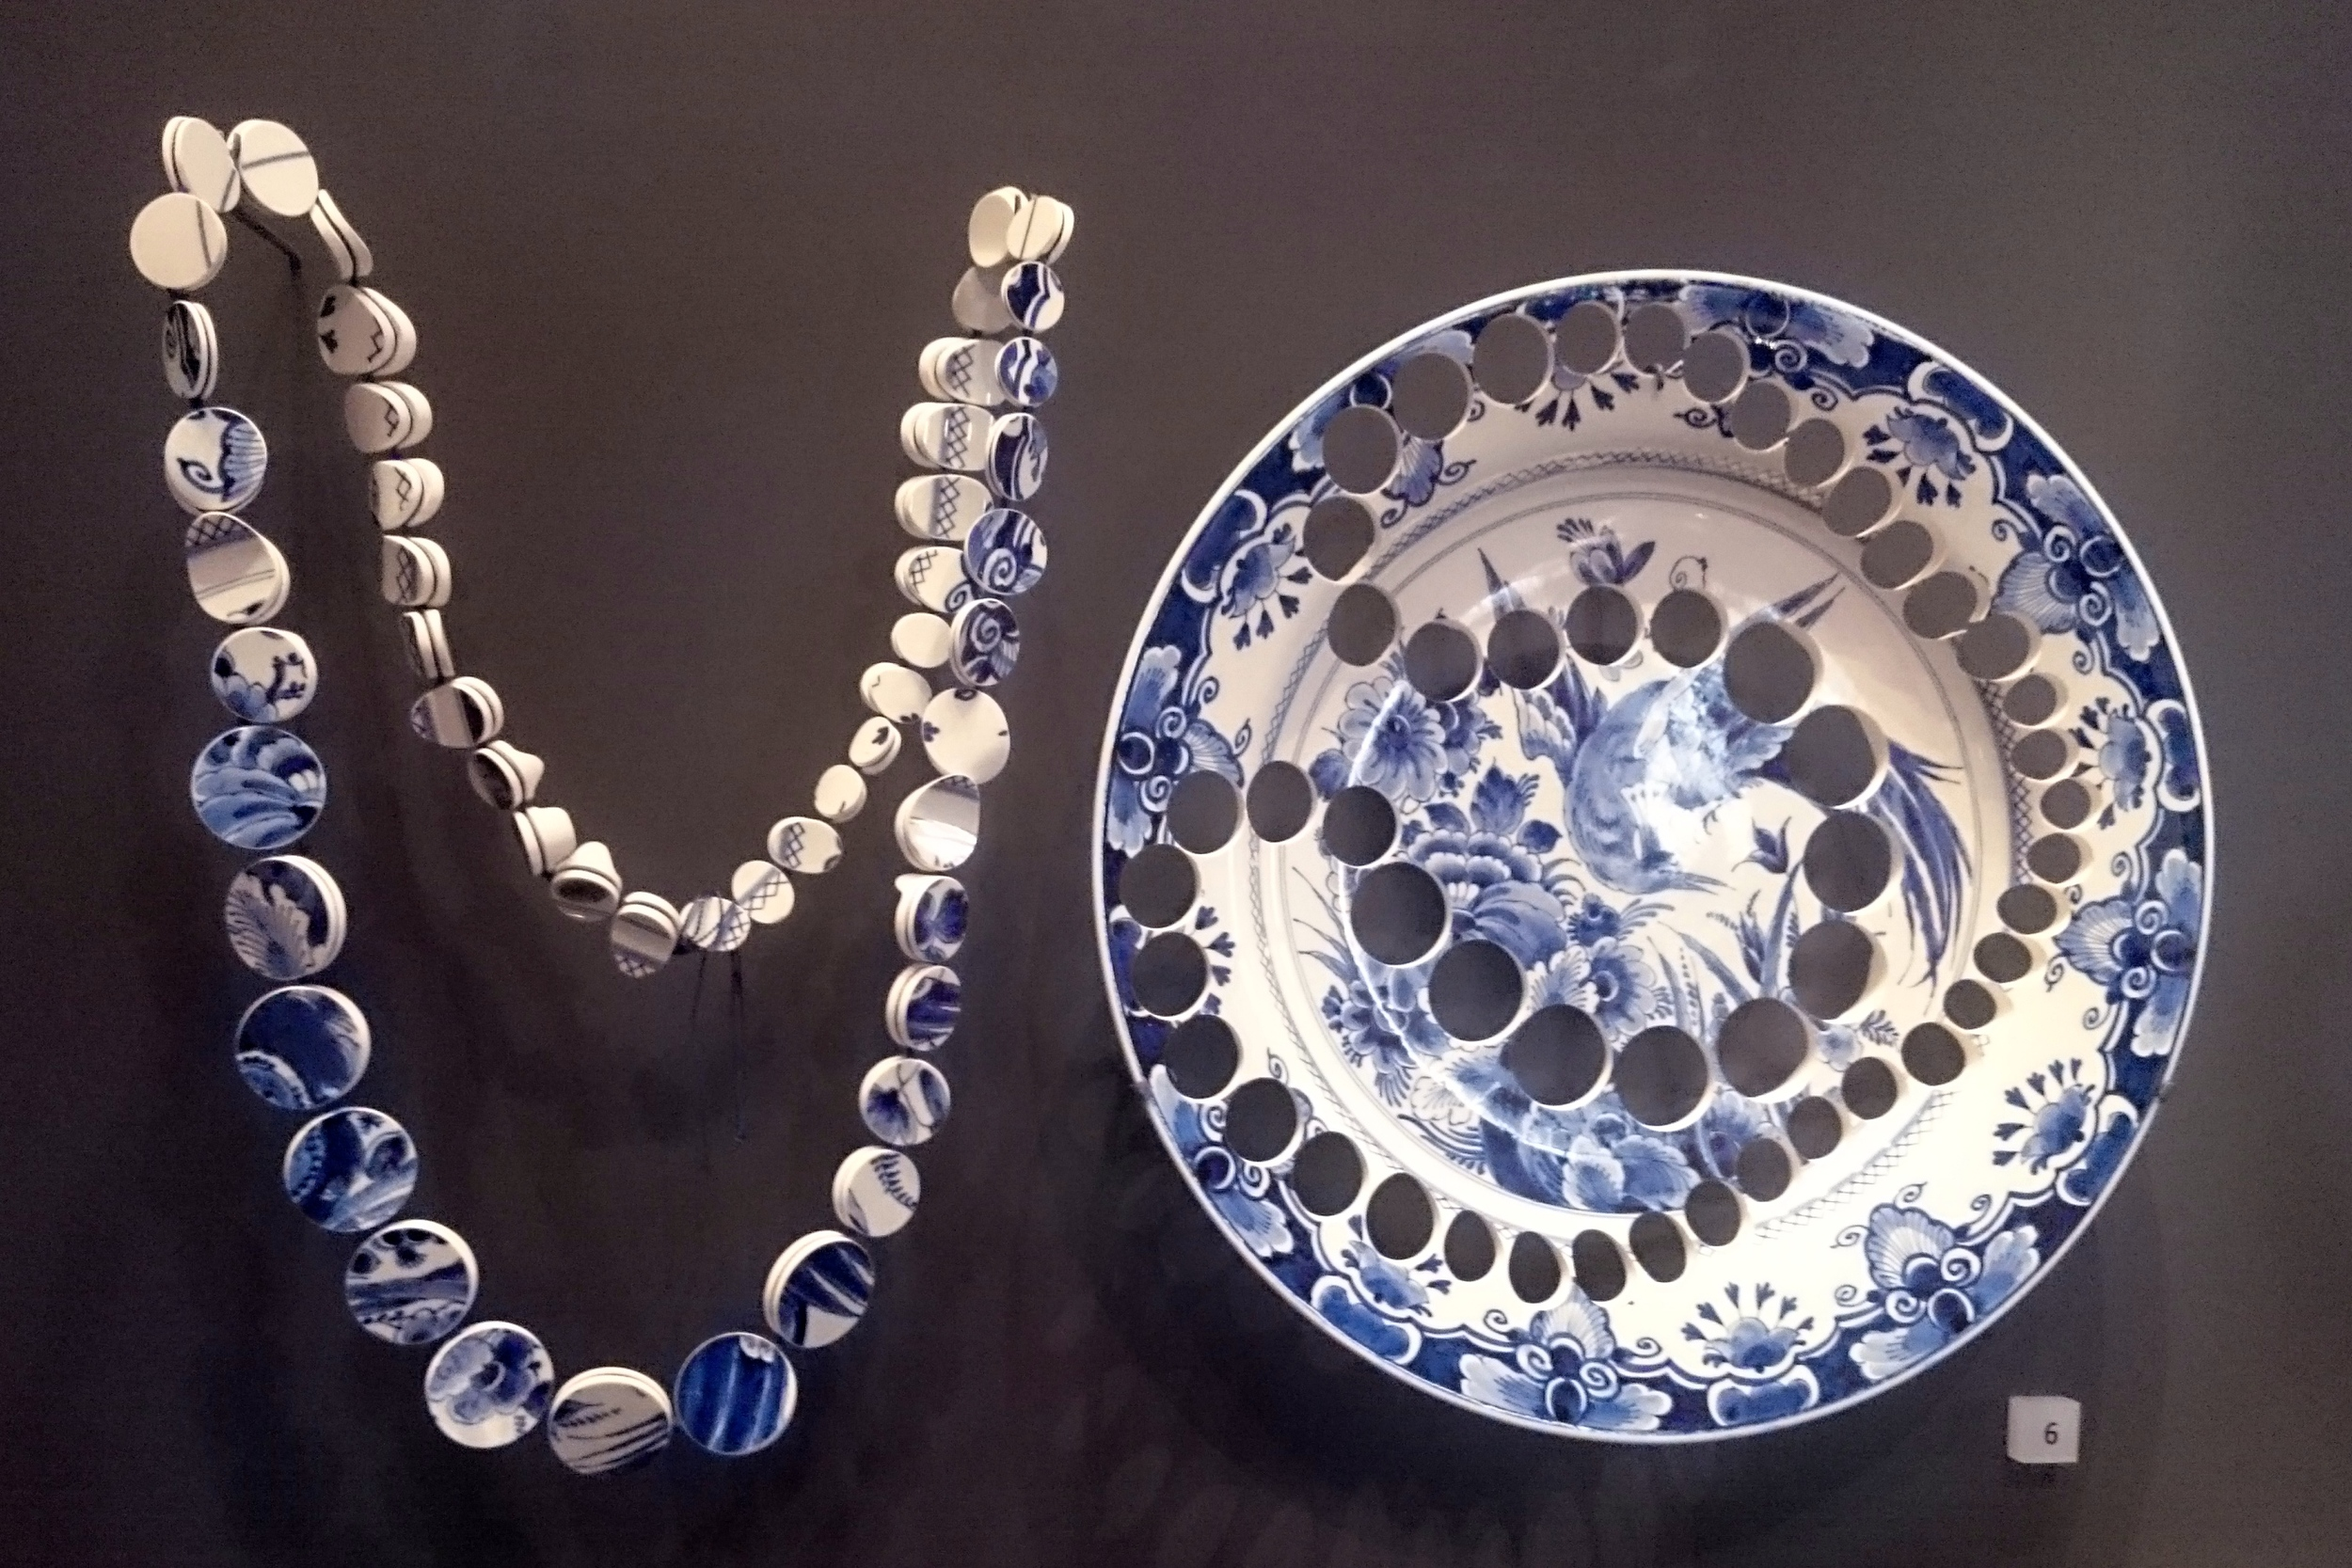 Kitchen Necklace by Gésine Hackenberg, 2009. 19th century Delftware Pottery.Wonderful to finally see this piece, it's bigger and brighter than I had imagined!